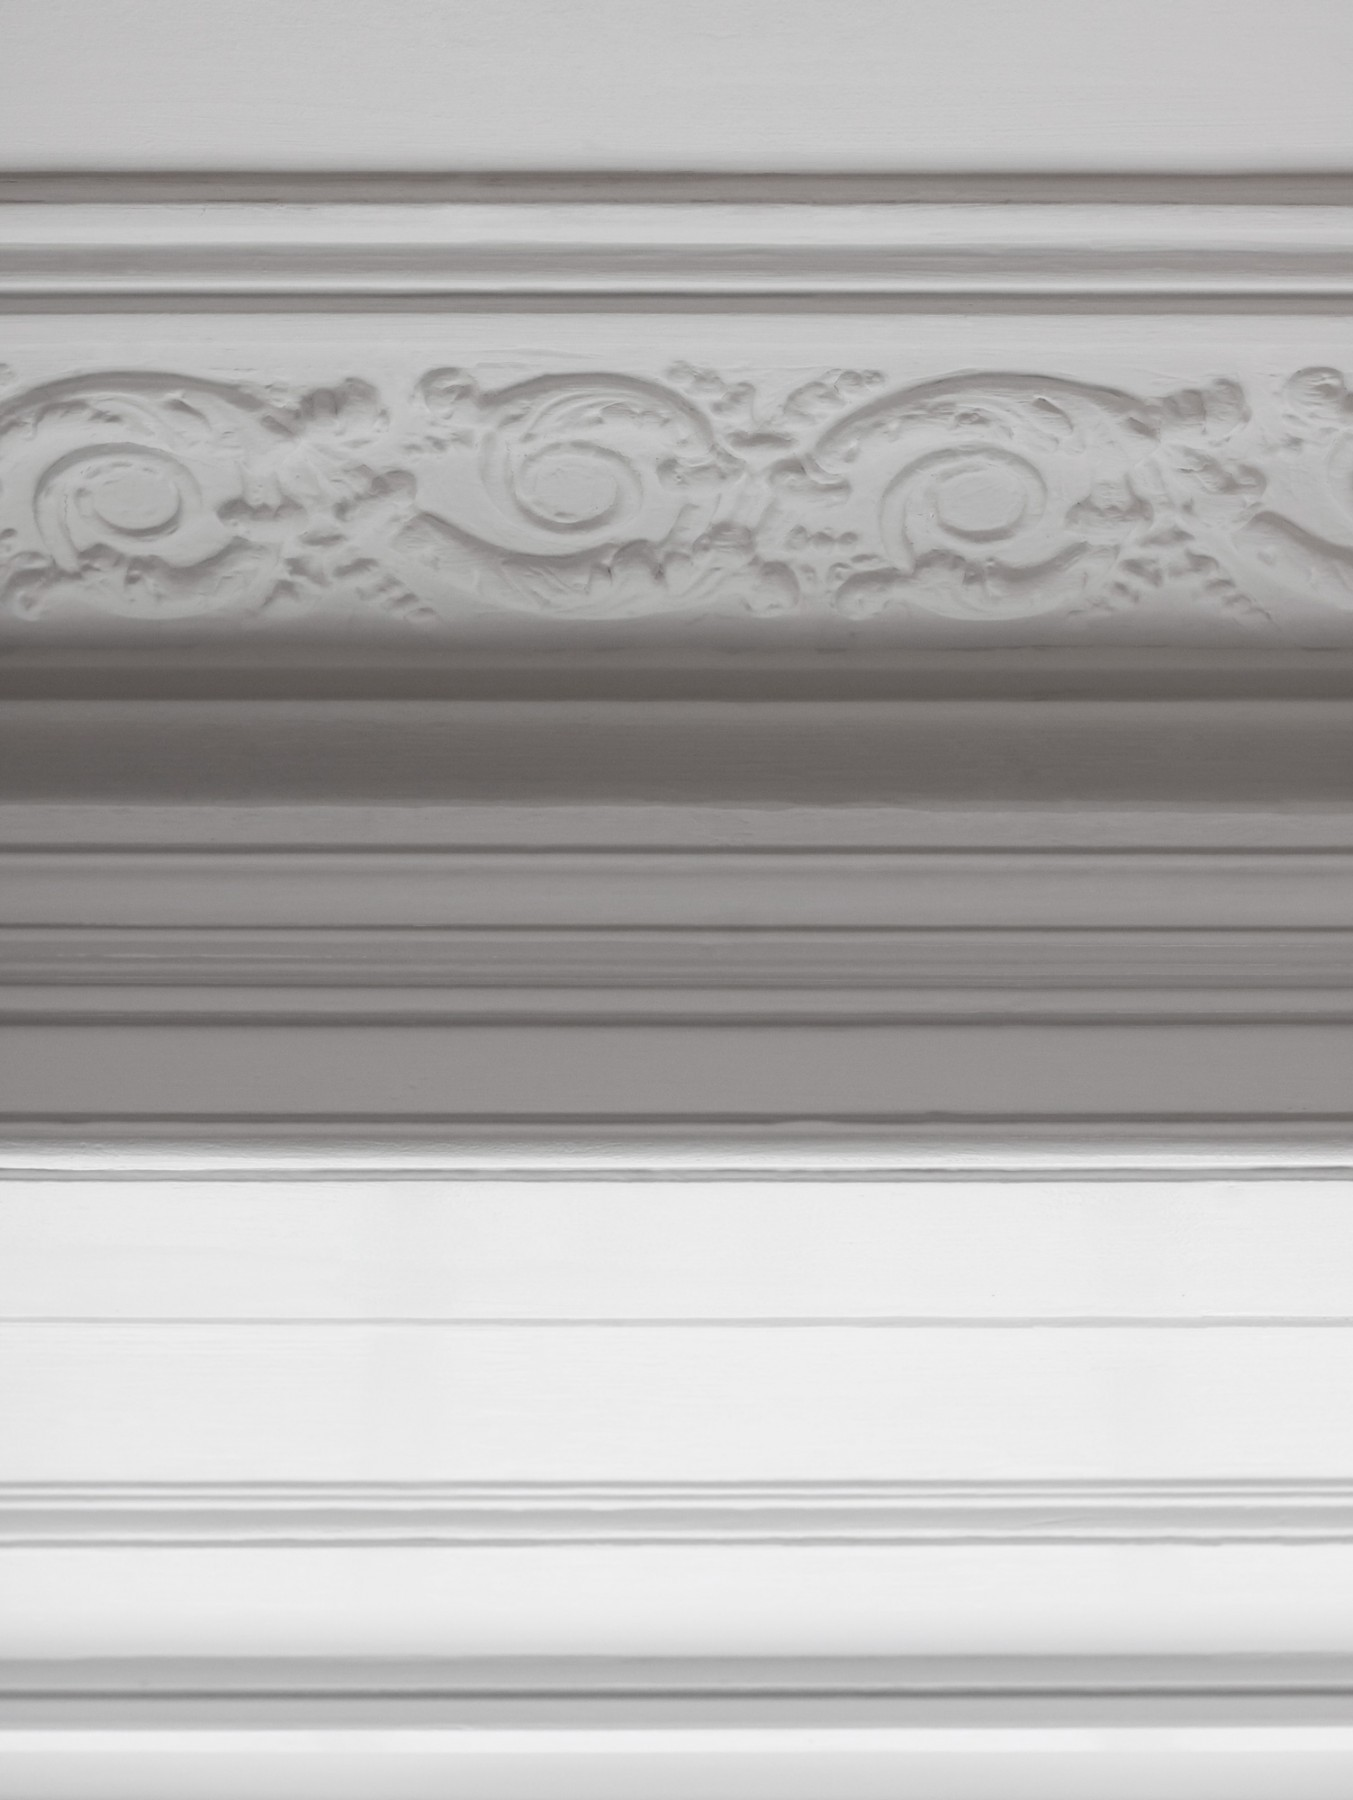 Fitzrovia house extension: Georgian house cornice